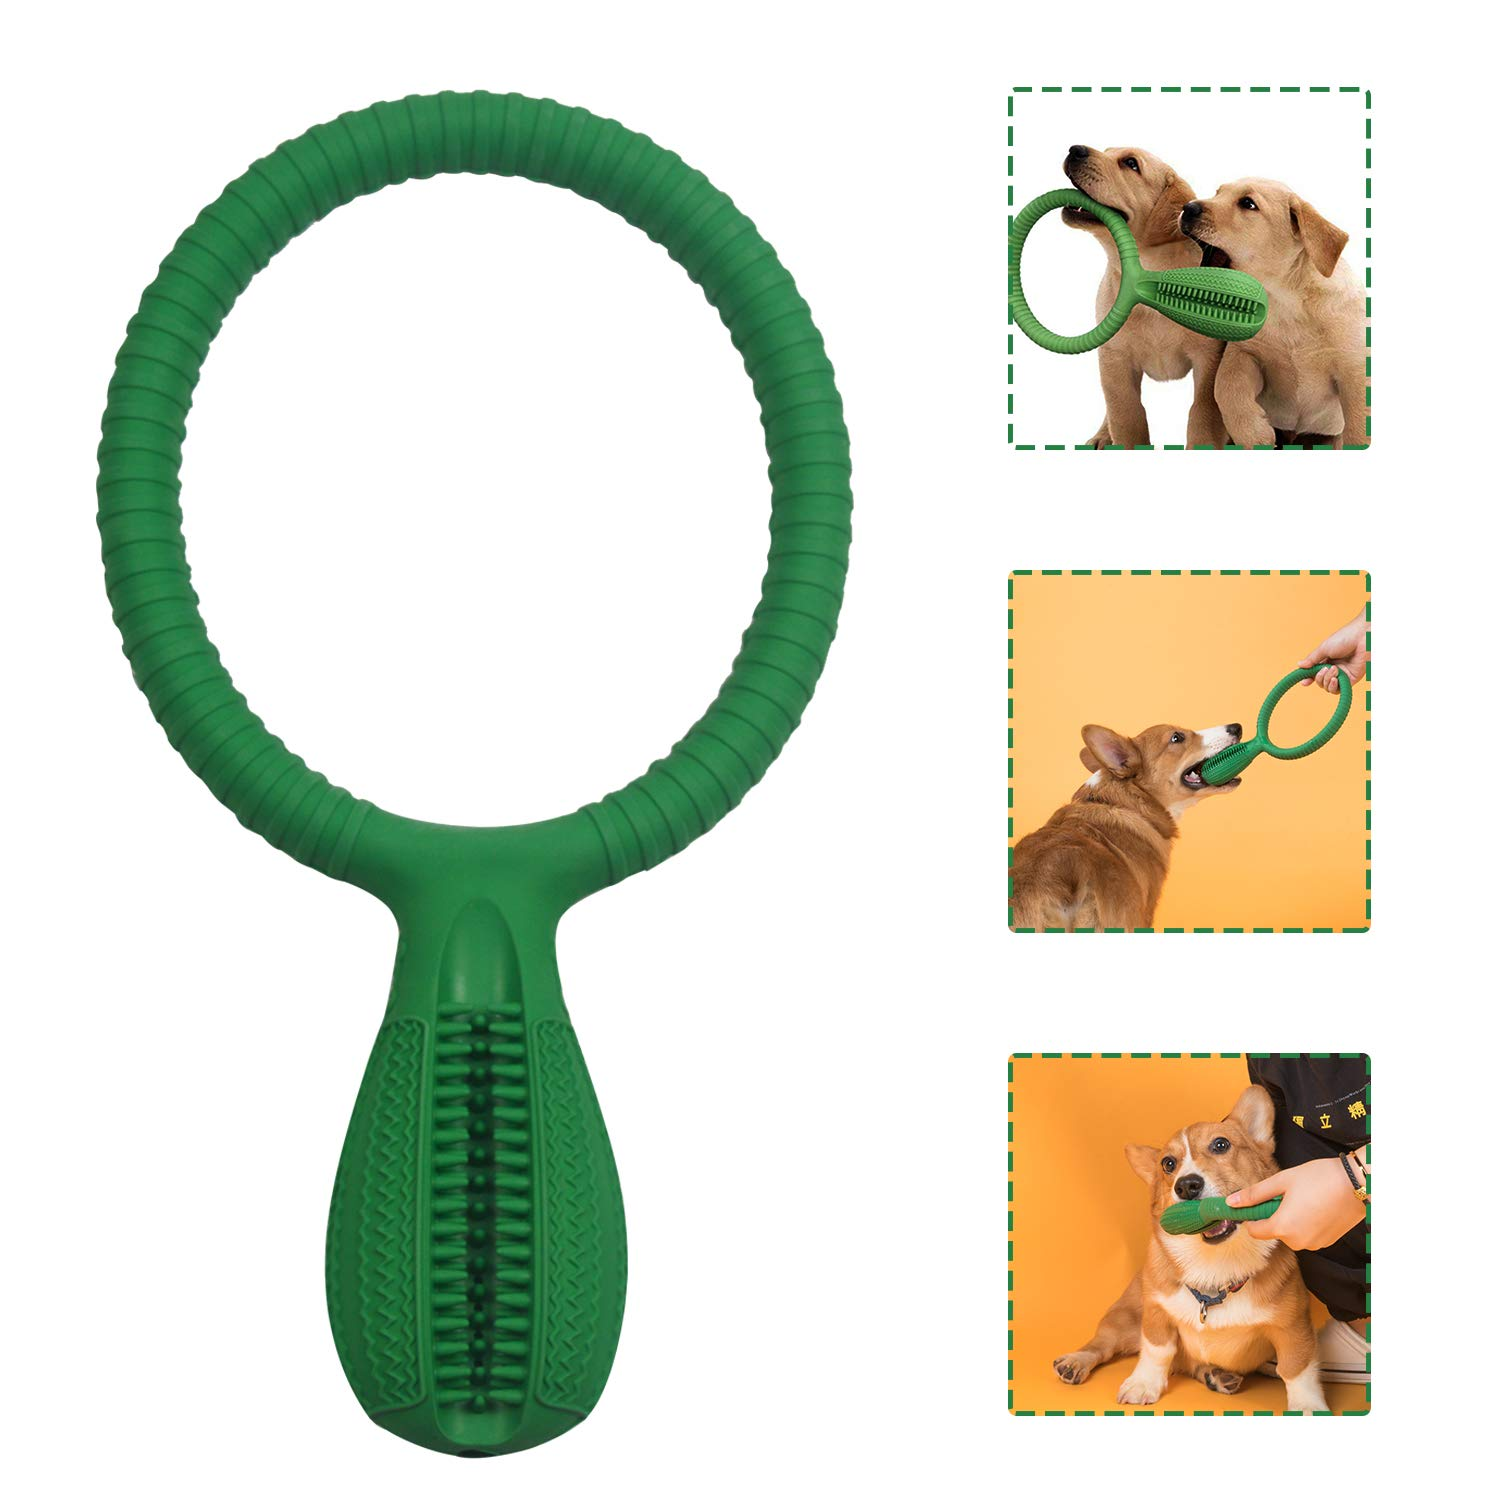 GuanZhon Dog Toothbrush Chew Toys, Upgraded Puppy Dog Teeth Cleaning Stick, Nontoxic Natural Rubber Interactive Toothbrush Toys with Round Handle for Dog Pets by GuanZhon